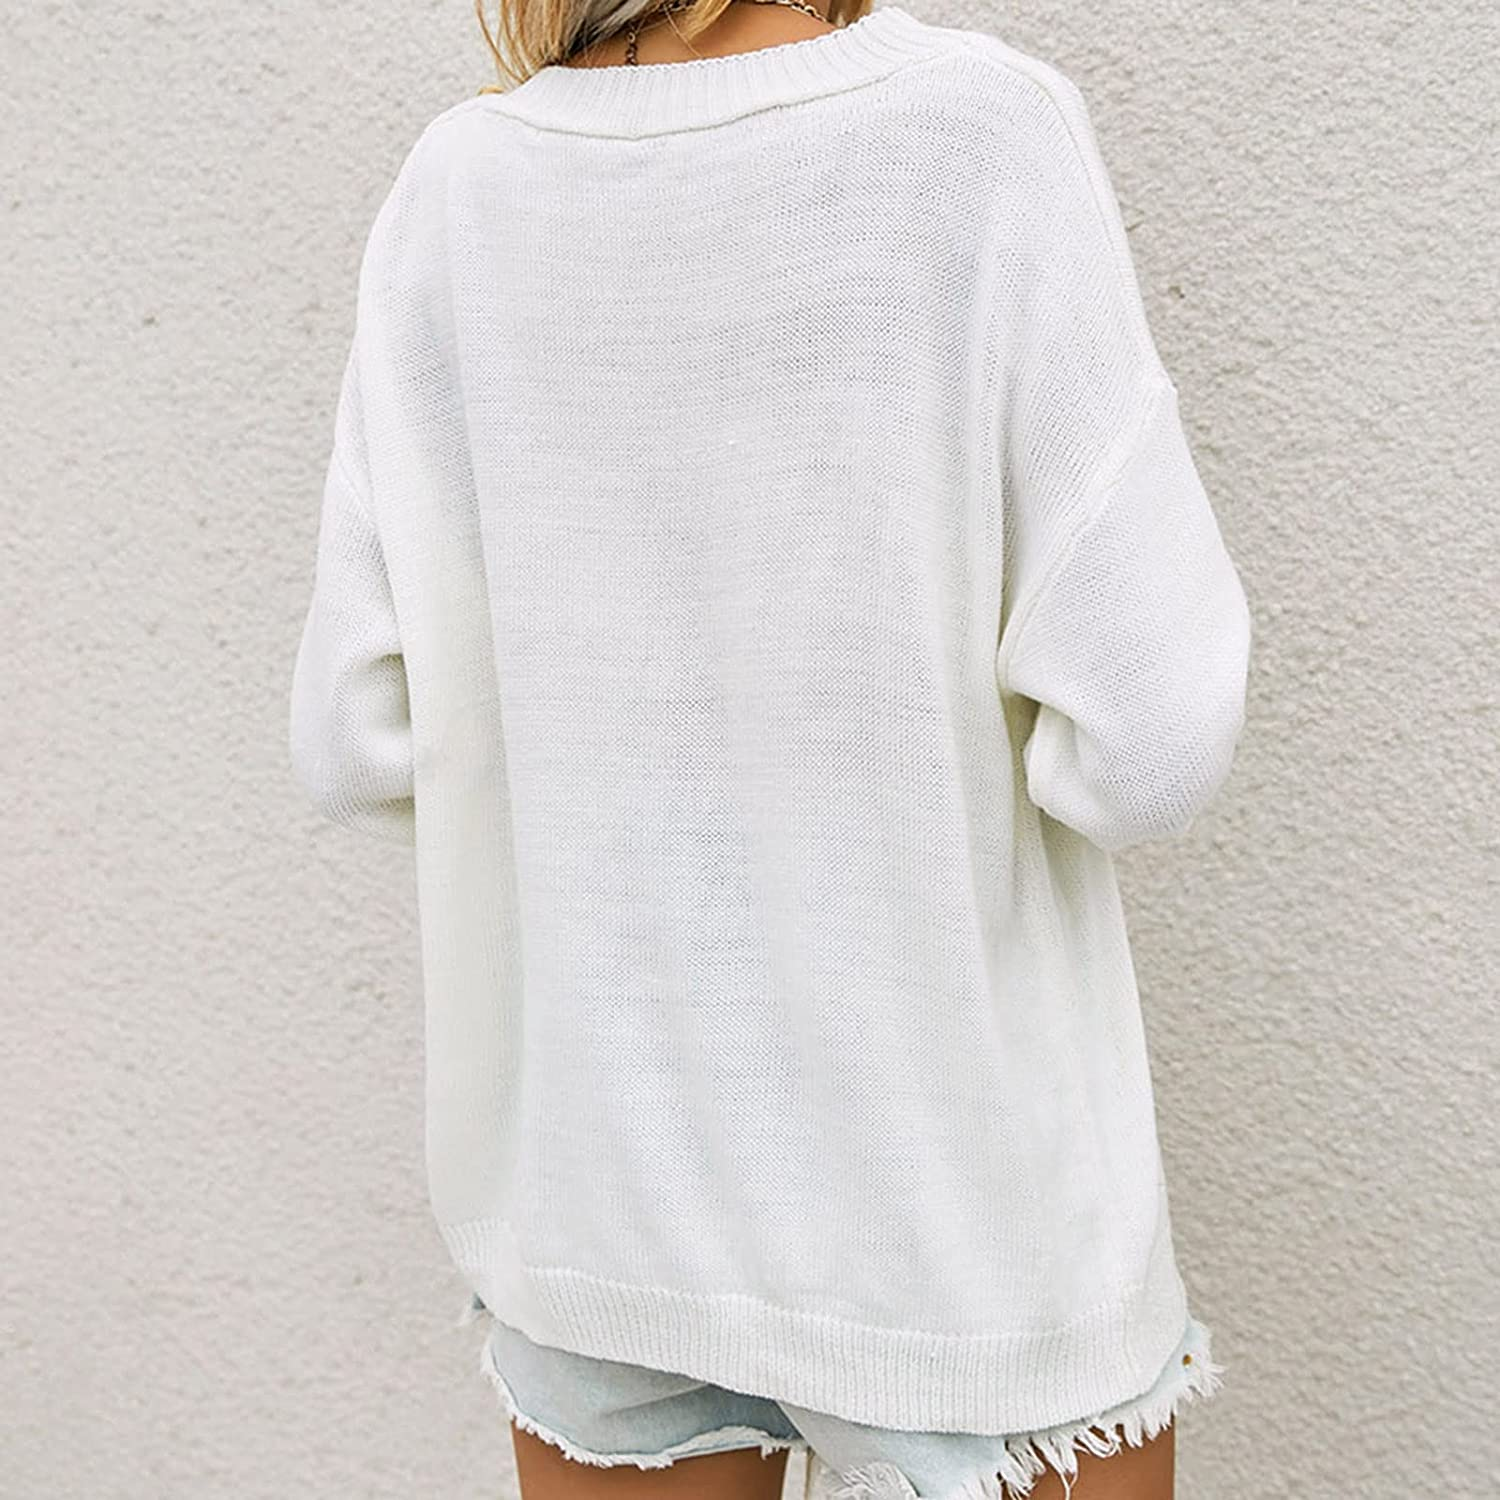 A2A Button Sweatshirt for Women Round Neck Long Pullover Solid Color Large Size Casual Single-Breasted Knitted Sweater